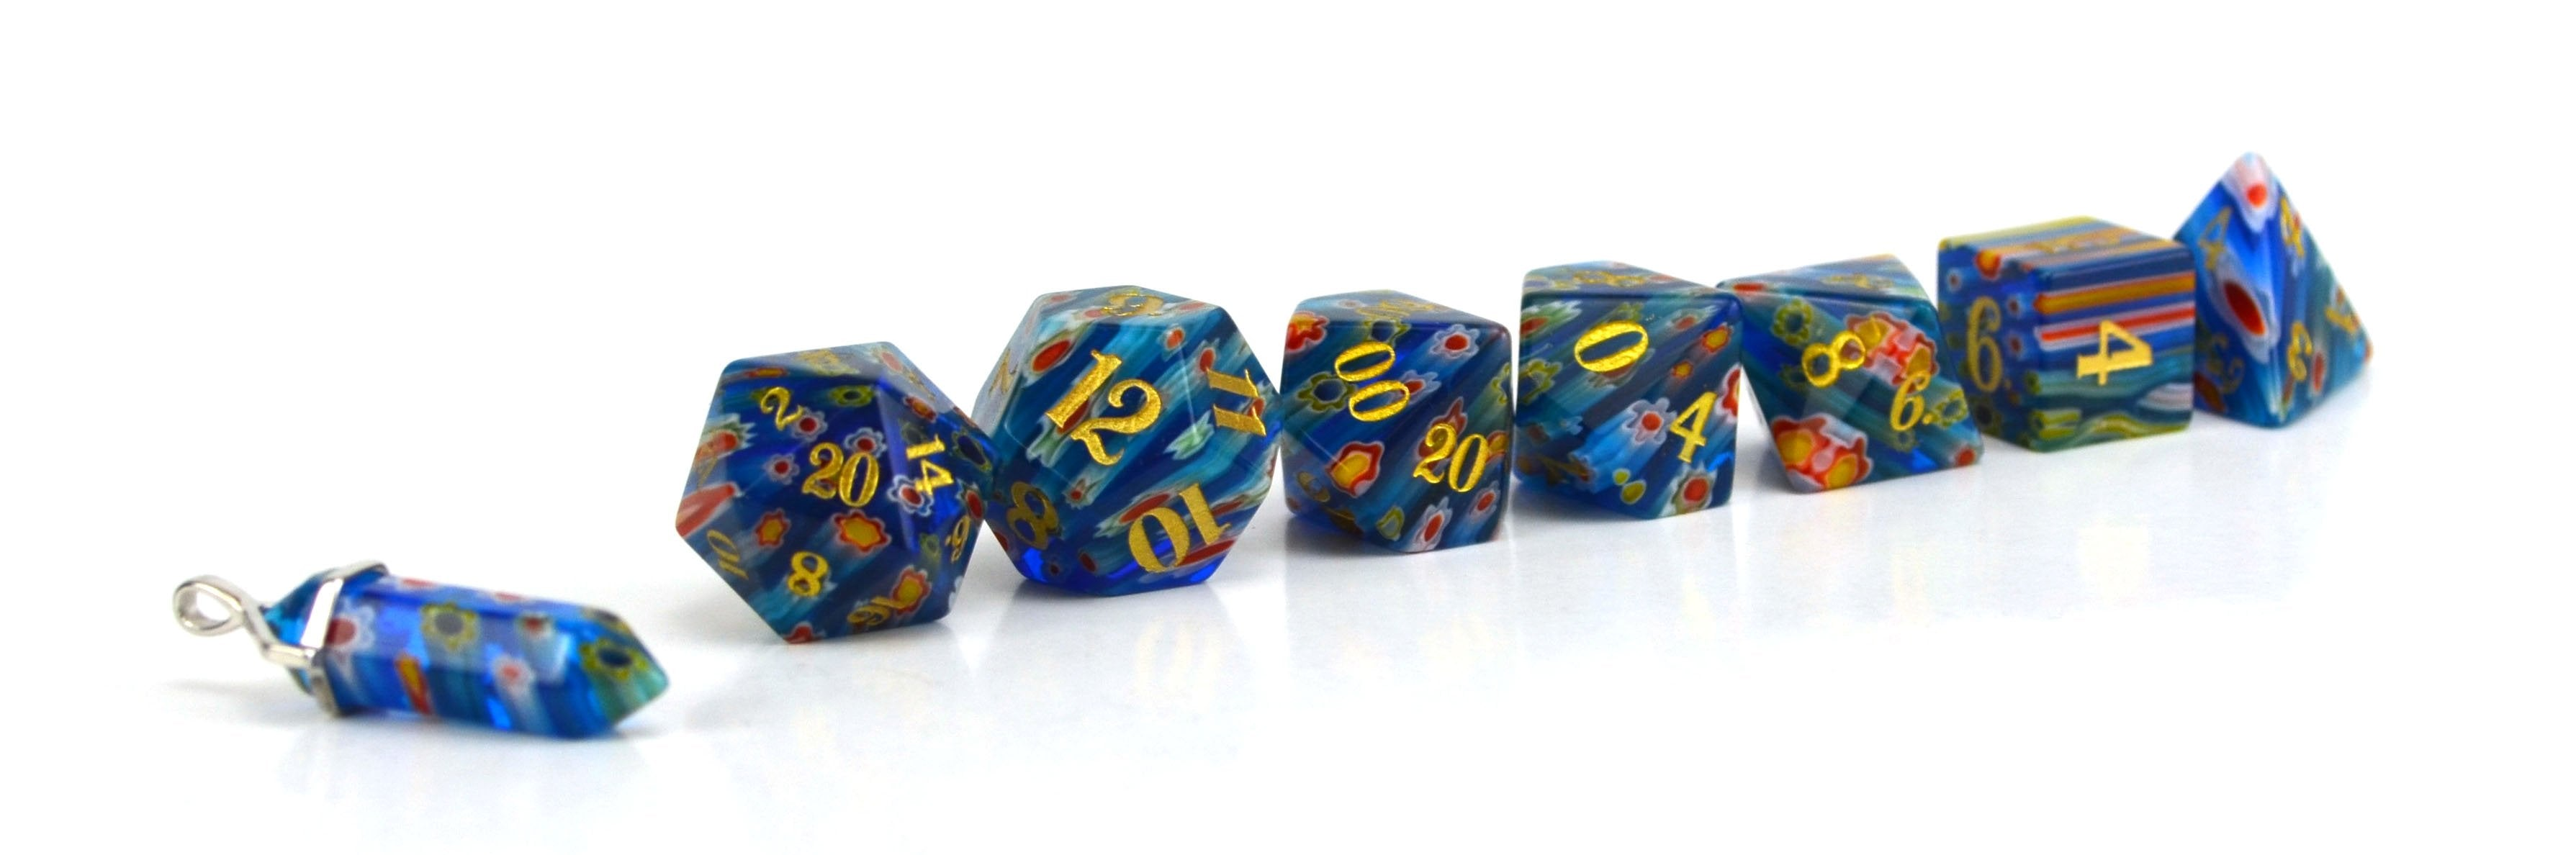 Forget-Me-Not Candy Glass Dice (JD) Set of 7